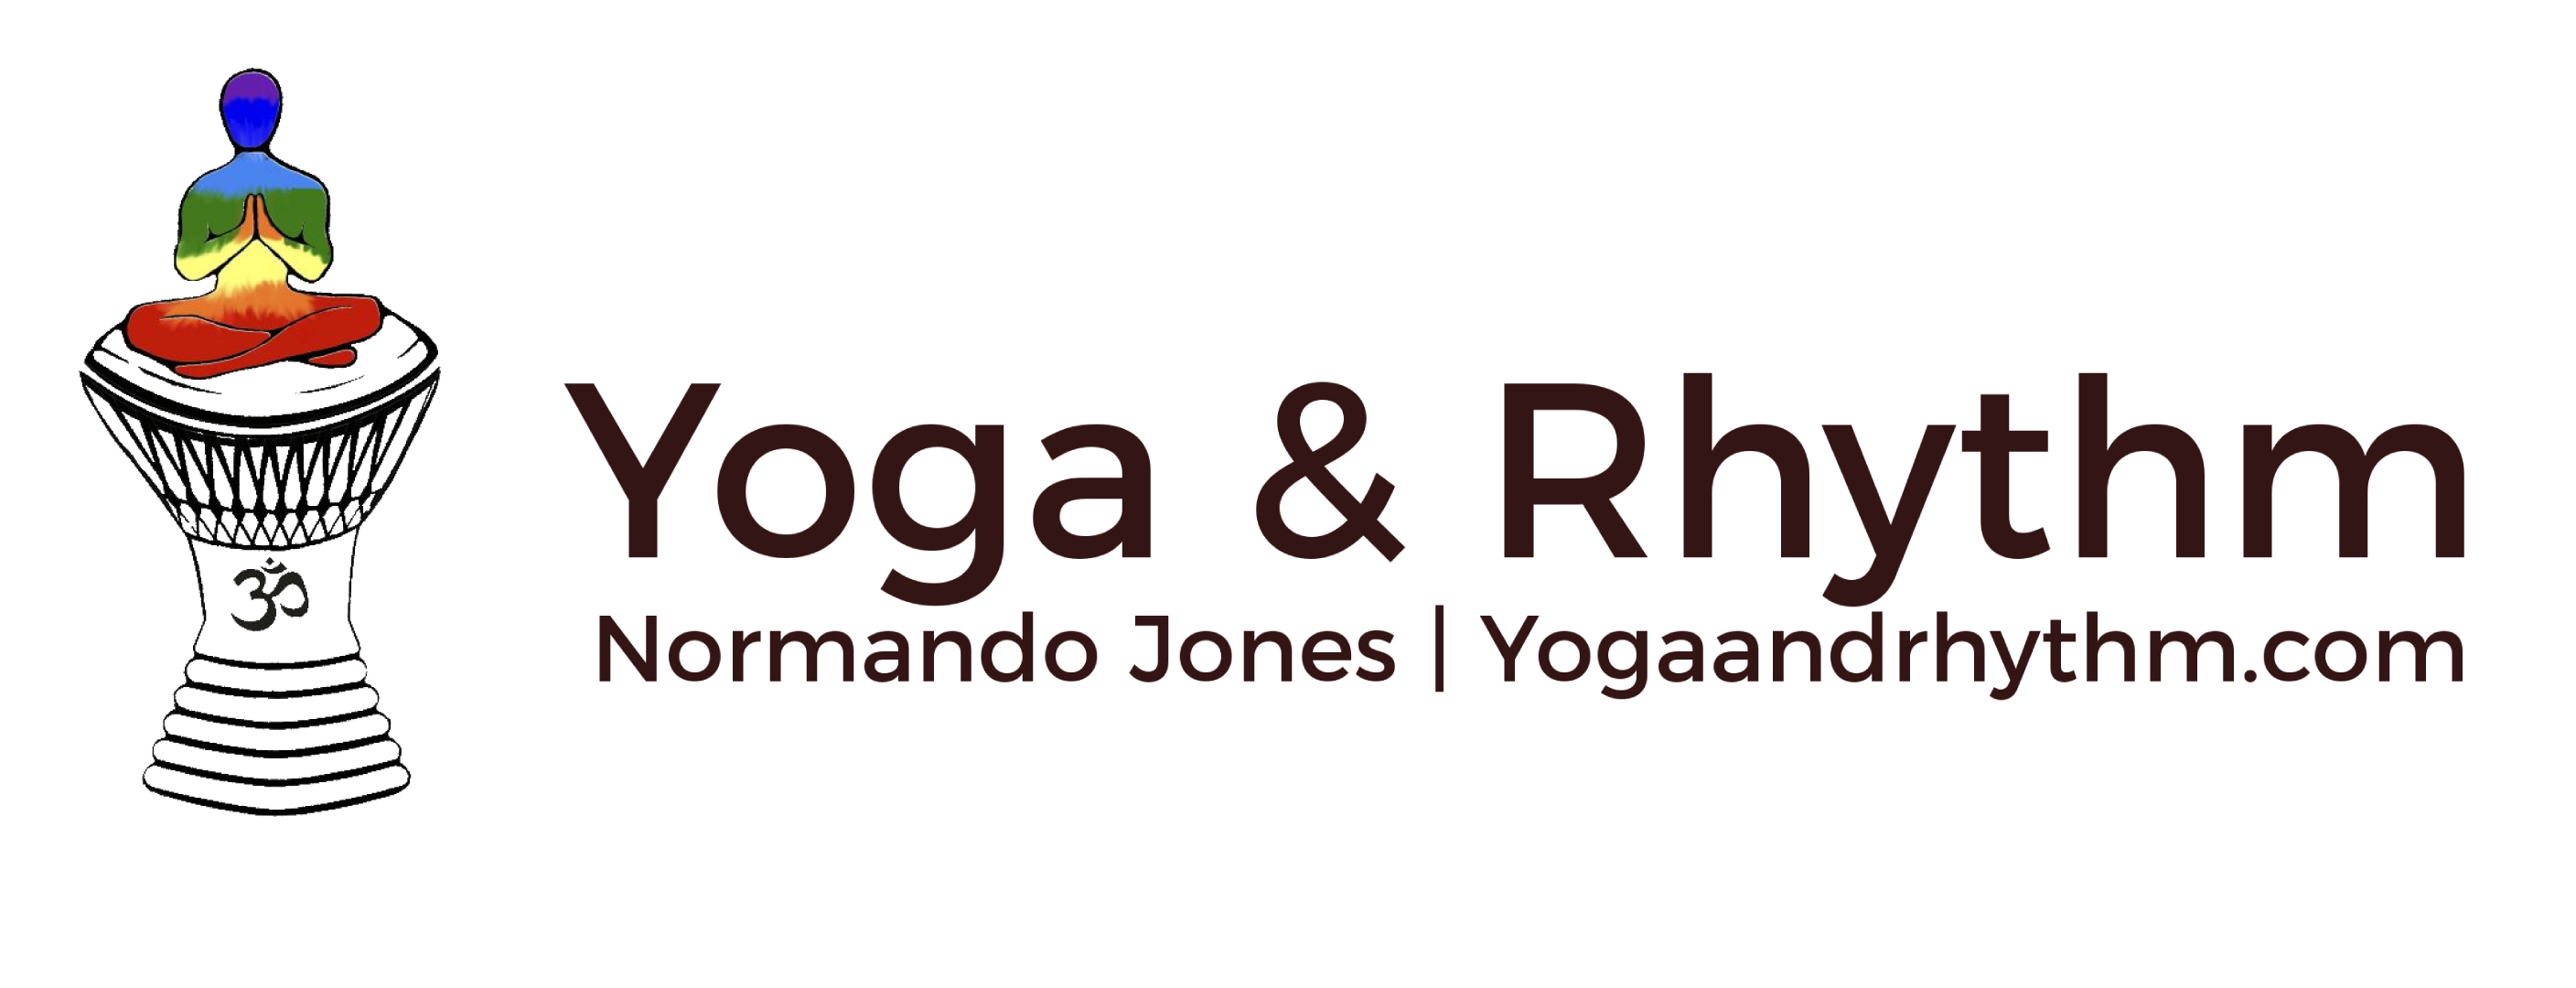 Yoga and Rhythm